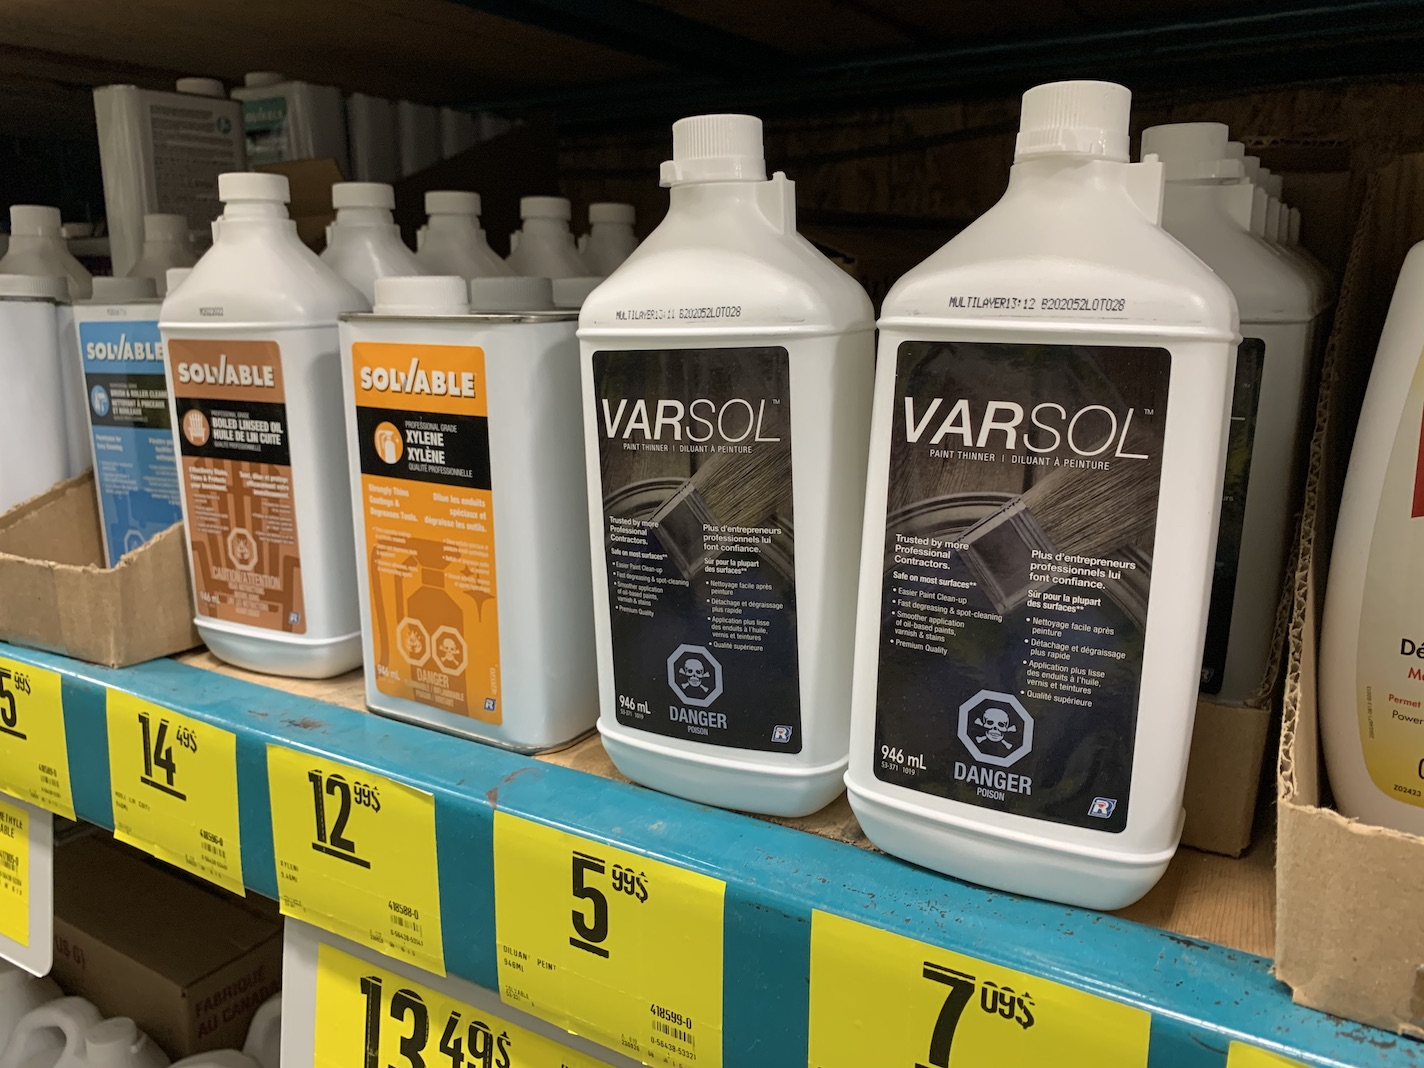 Recochem Varsol Paint Thinner – National Class Action